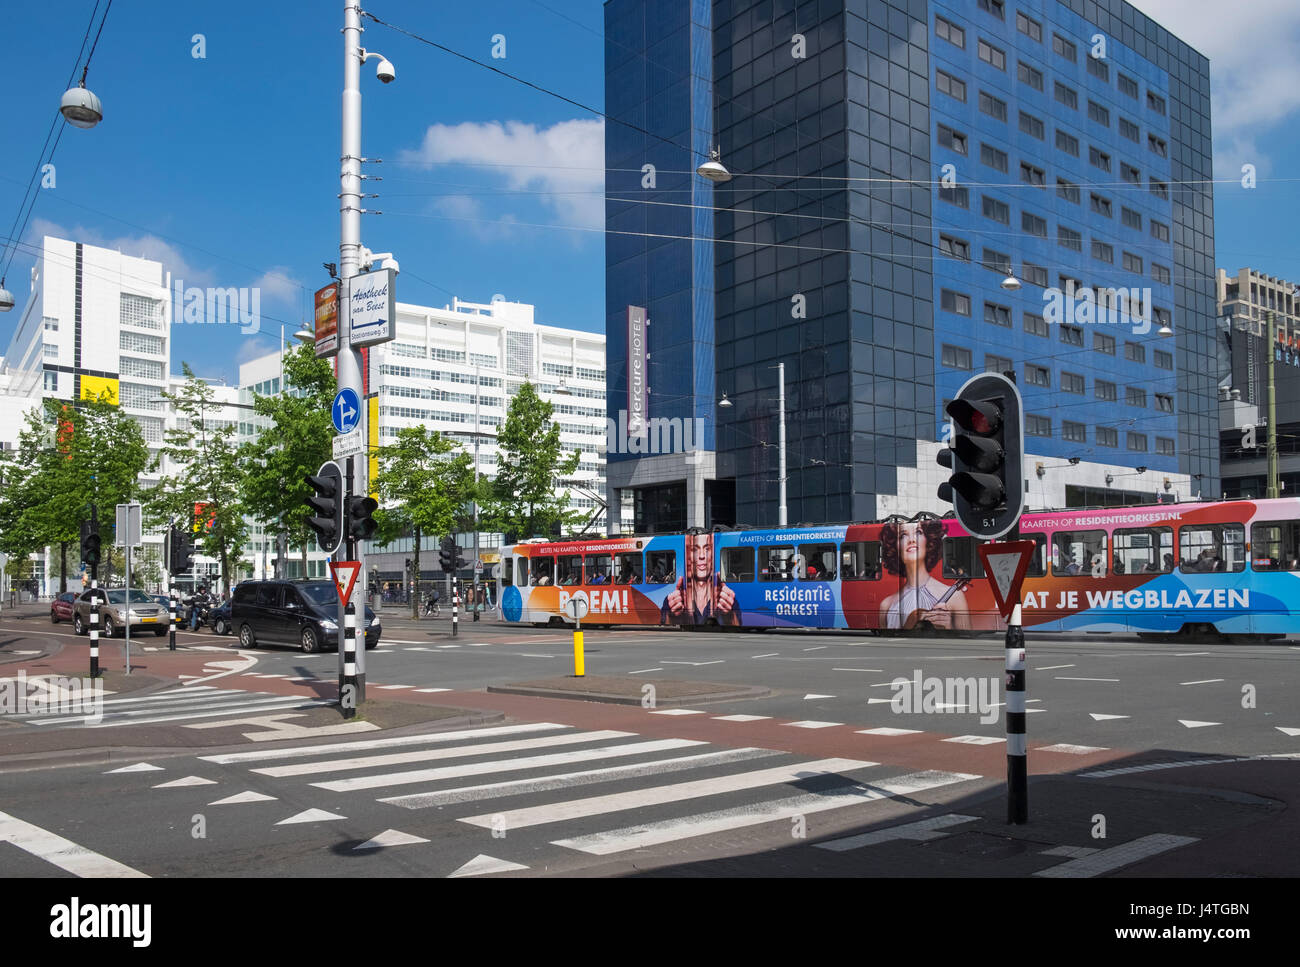 Examples Of Modern Architecture Design Seen In Central Den Haag The Stock Photo Alamy